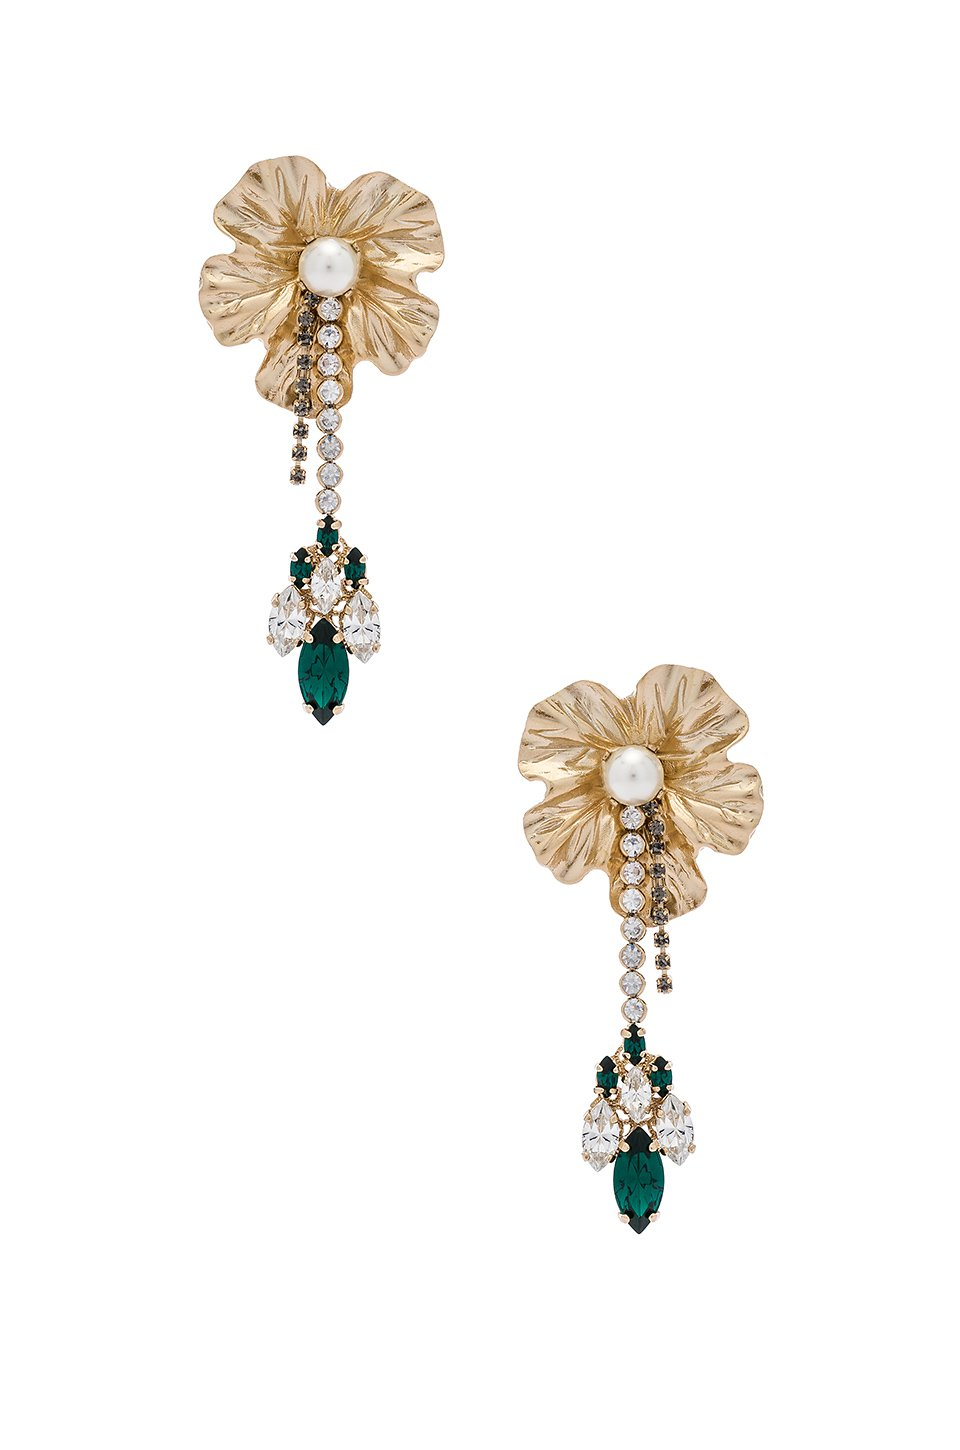 Dangly Flower With Pendant Earrings